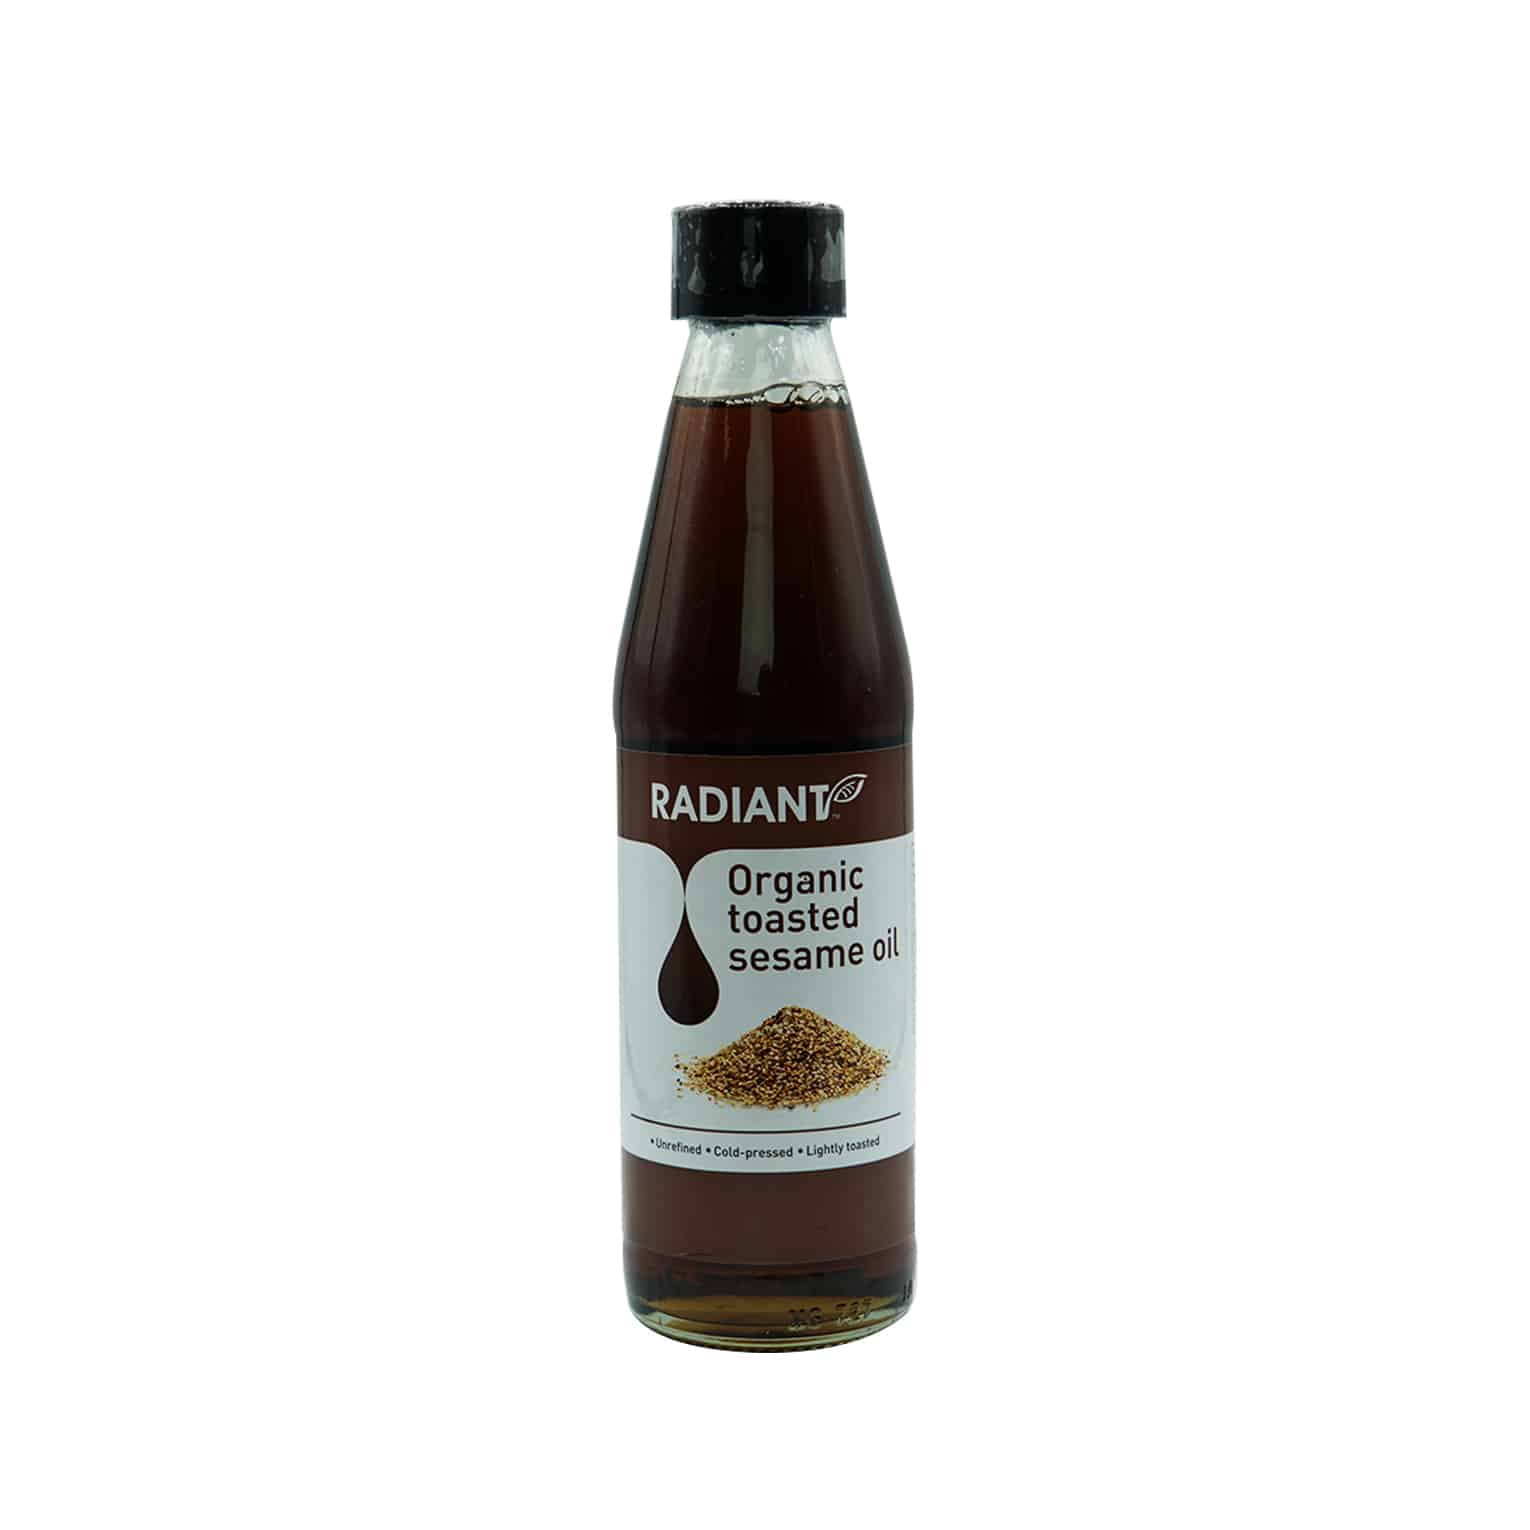 Radiant-Organic-Toasted-Sesame-Oil